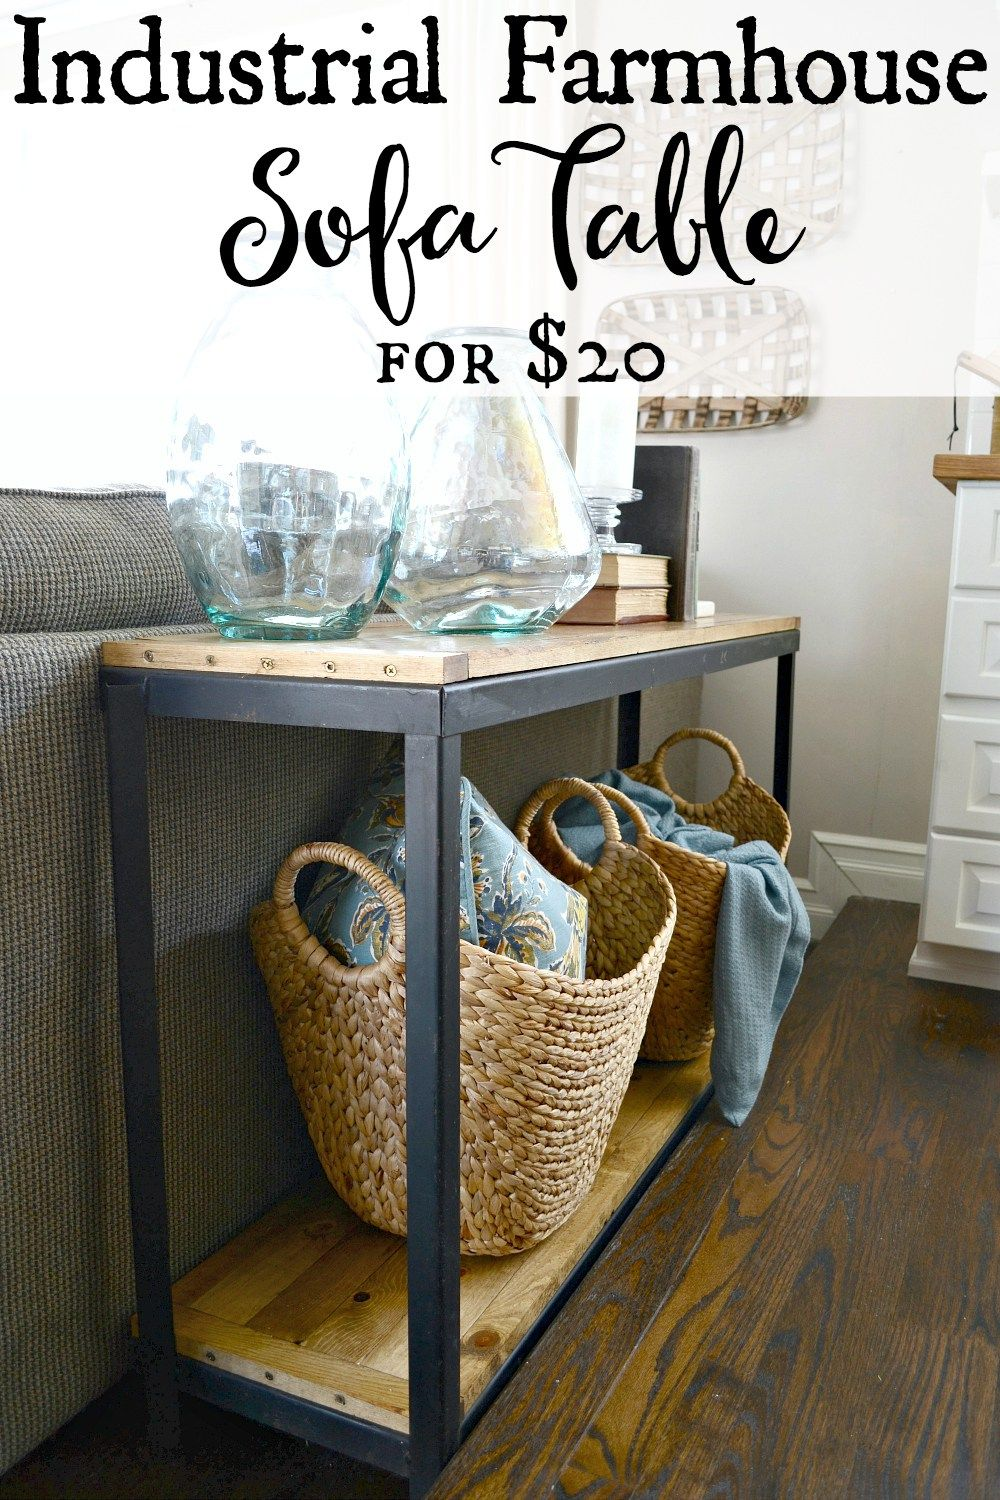 DIY Farmhouse Industrial Sofa Table Turn A Metal Shelf Into Rustic Shelving For 20 Find Out More At Theweatheredfox